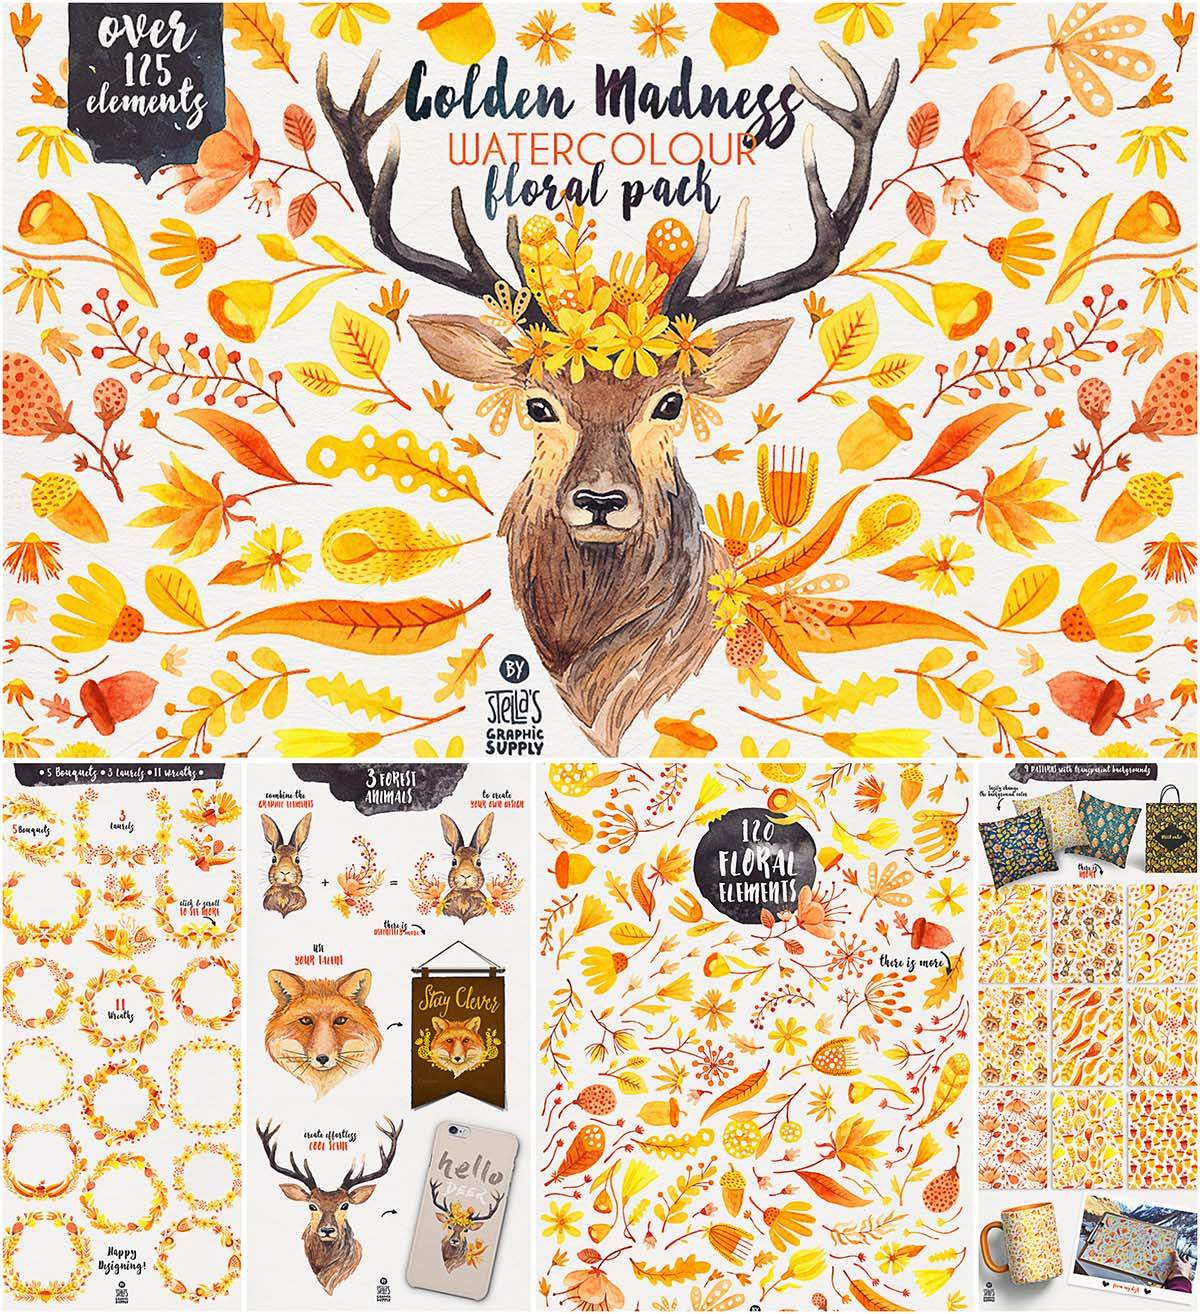 Golden madness watercolor illustrations set